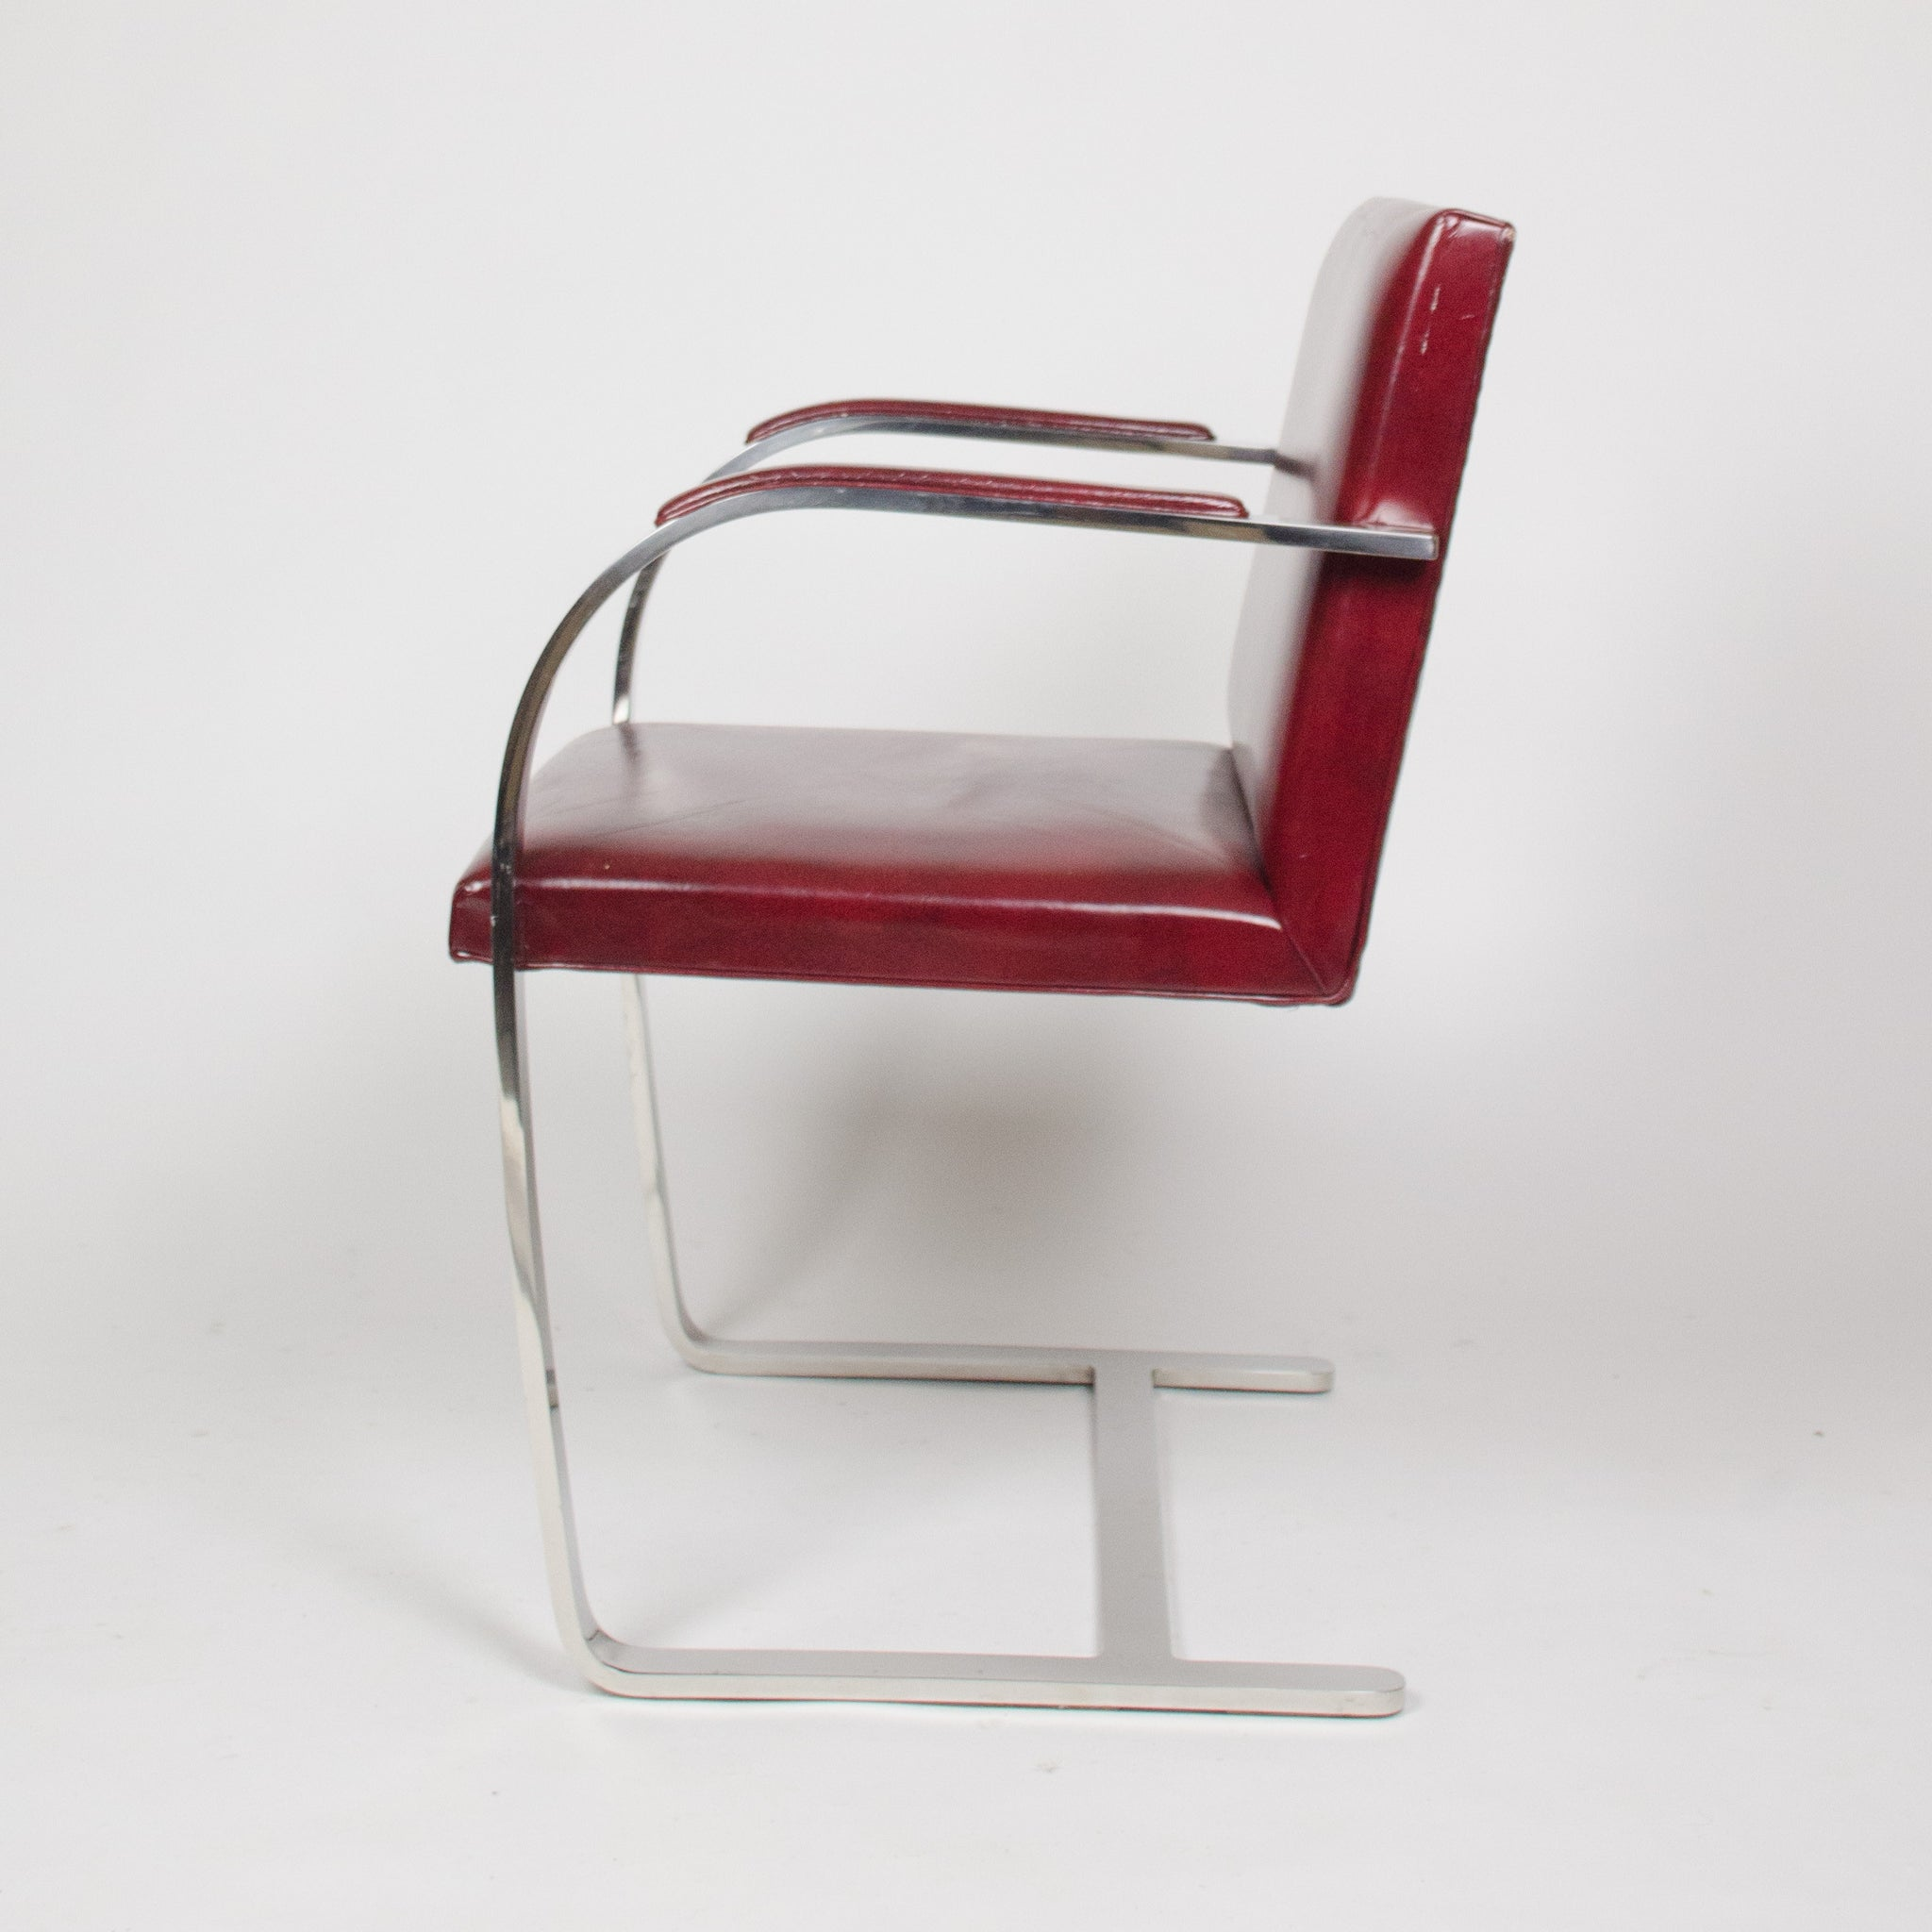 SOLD Knoll International Stainless Mies Van Der Rohe Brno Flat Bar Armchairs